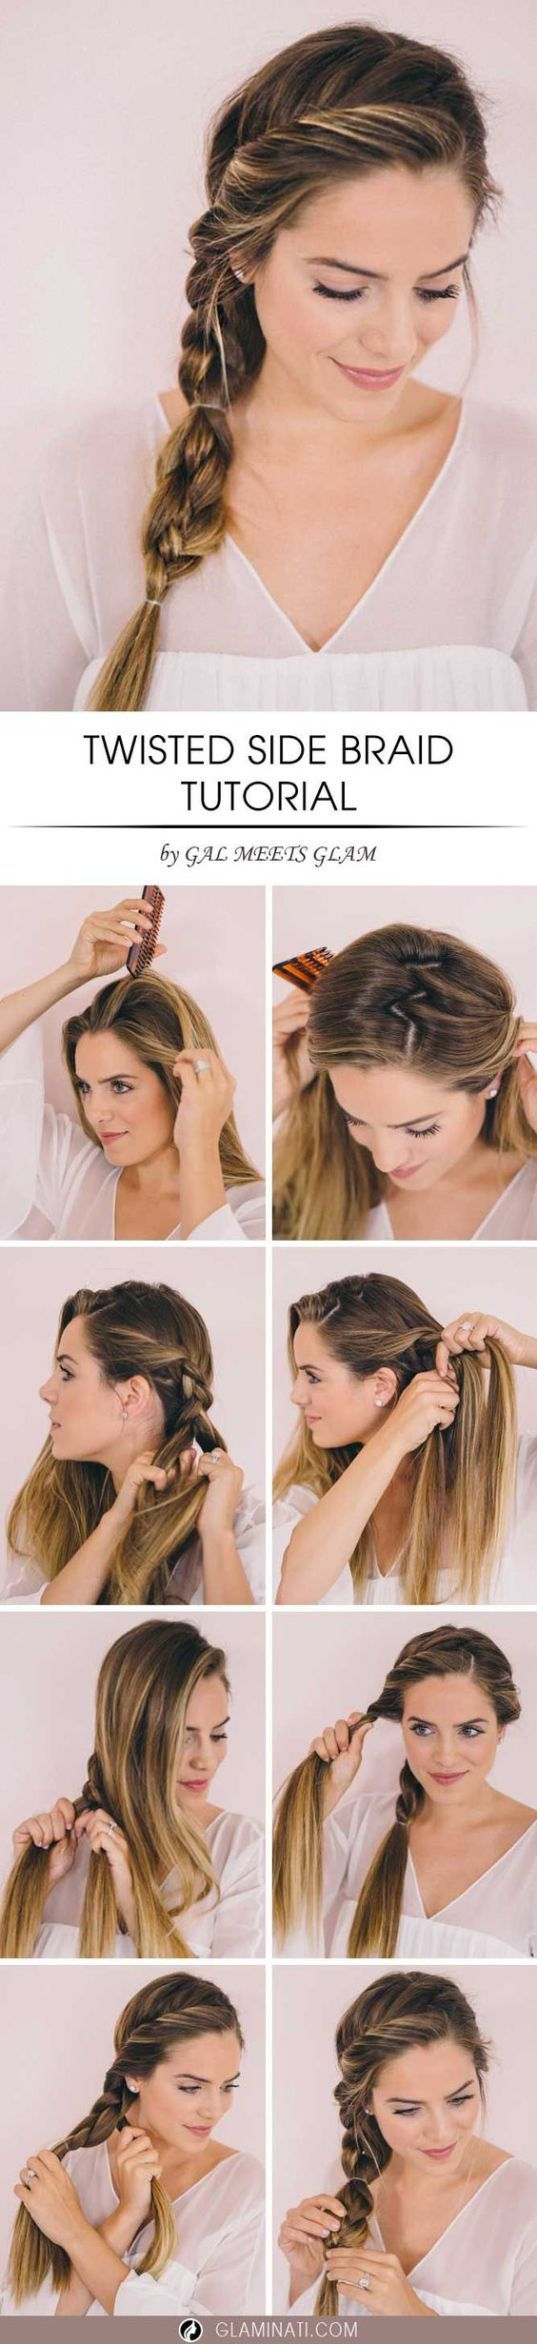 easy and quick braids to save time and look awesome plait